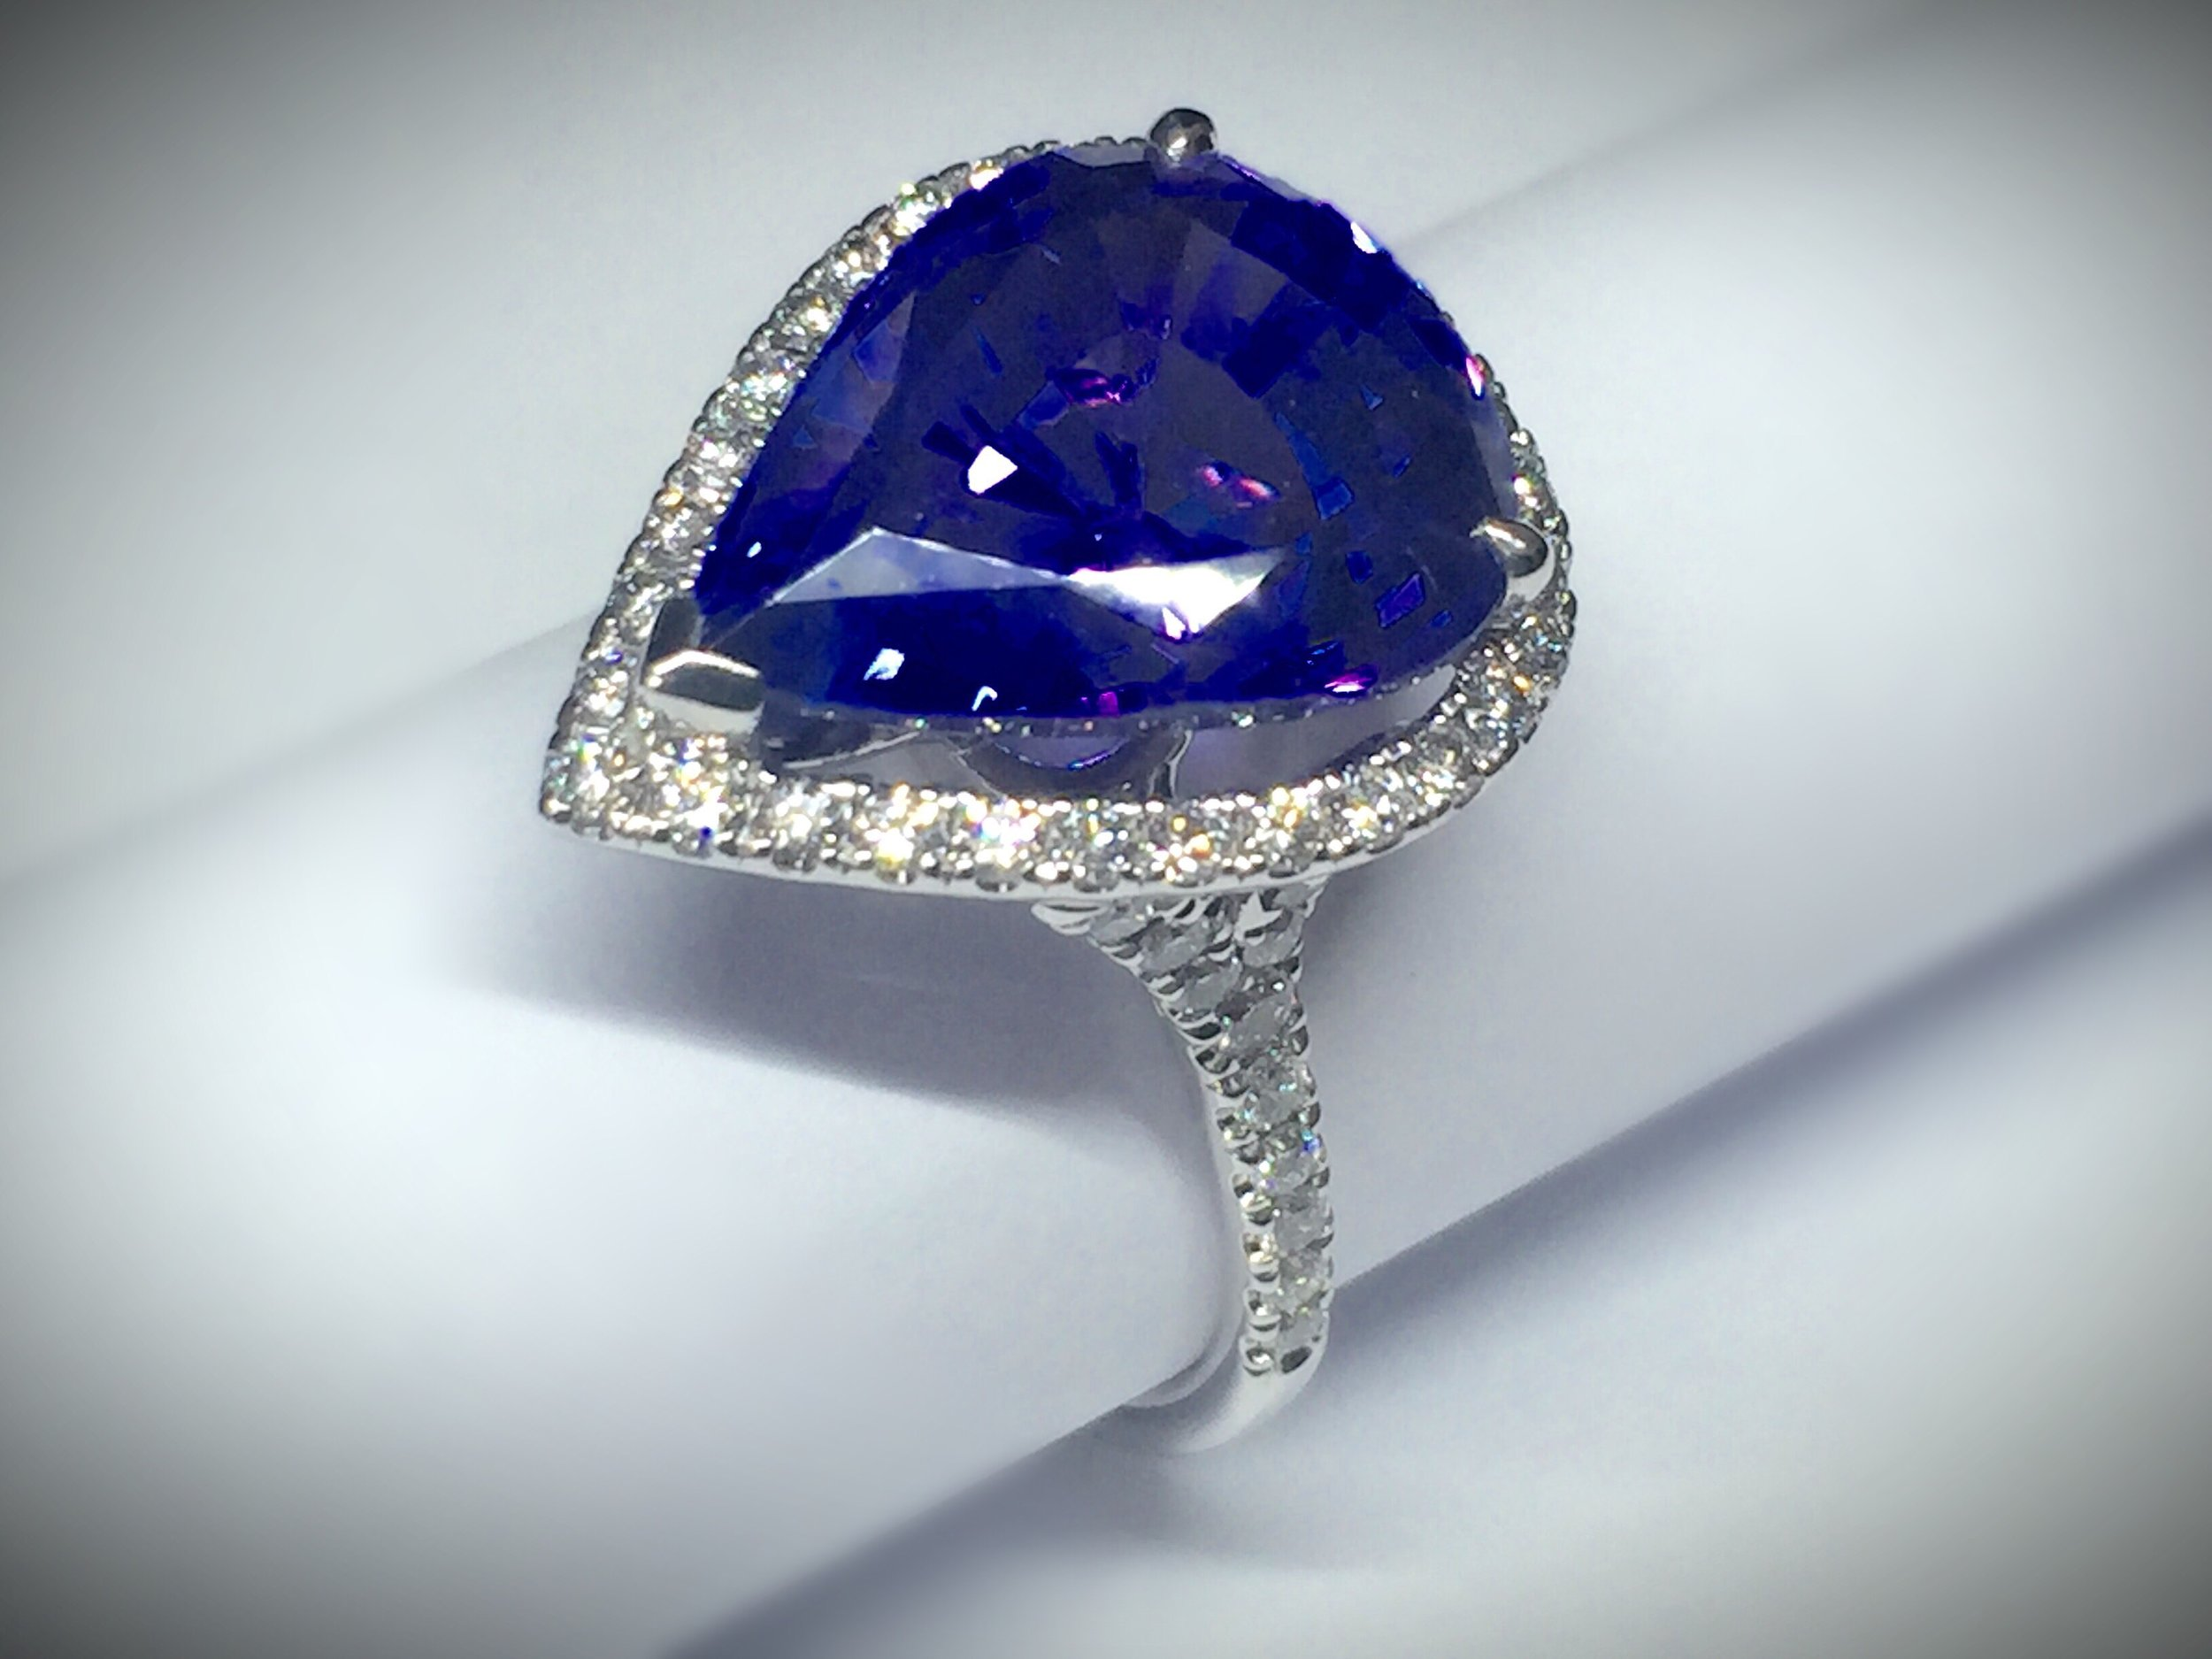 Copy of 8.63ct pear shaped tanzanite and diamond ring. Made in Chichester, England.